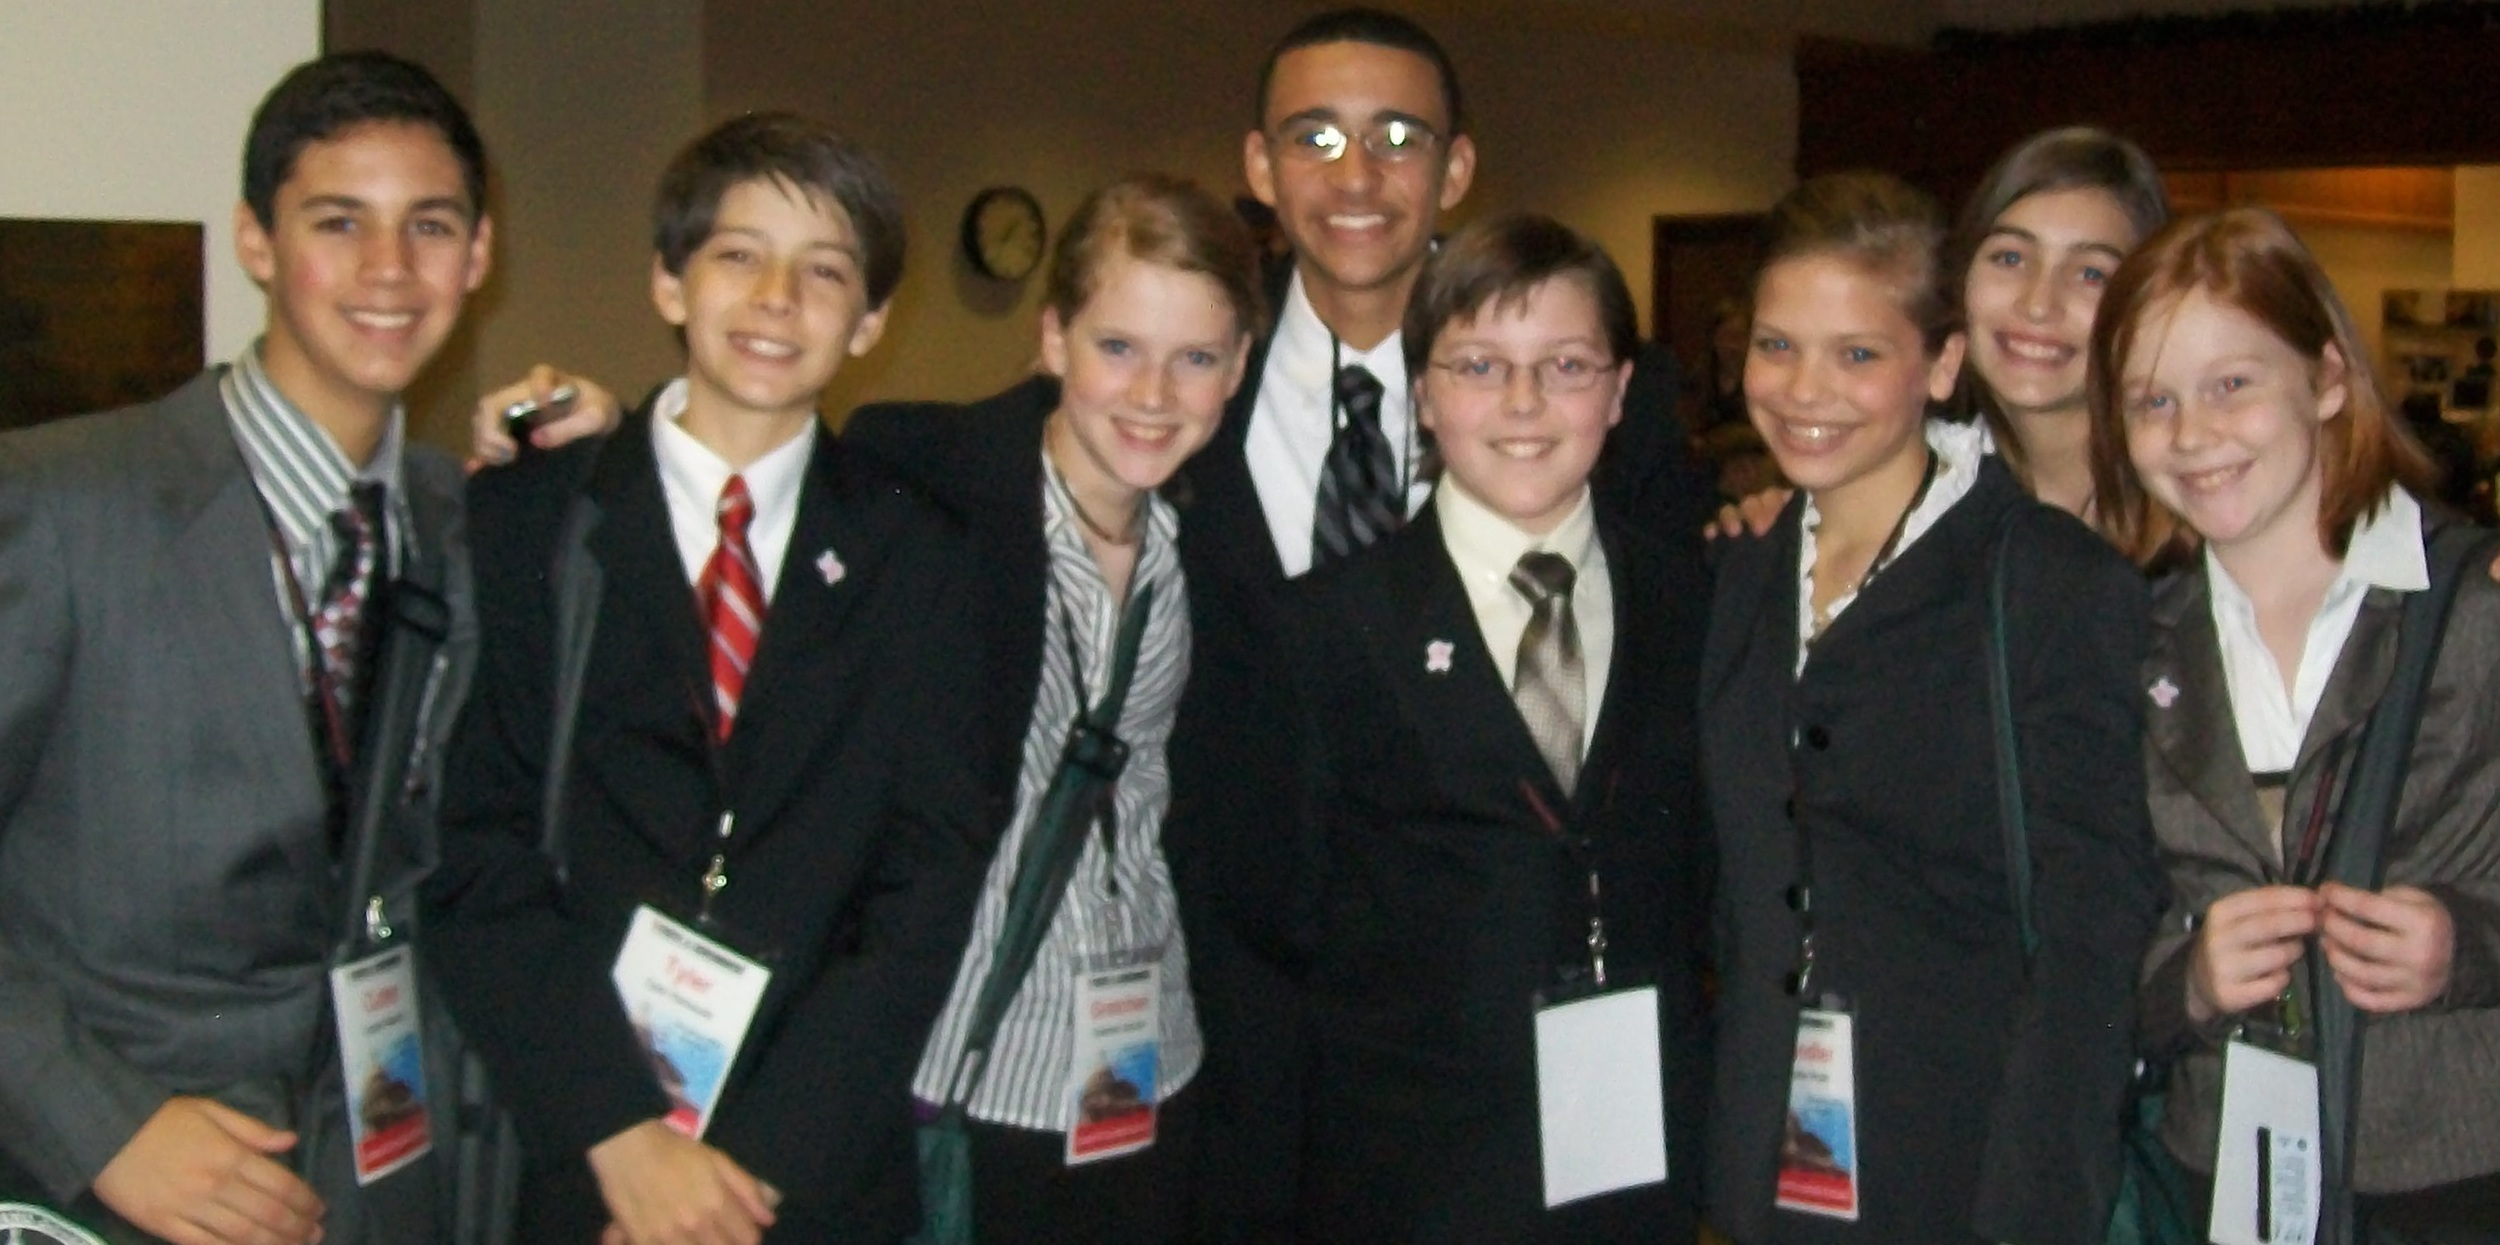 Youth & Government District 5 Conference 2009